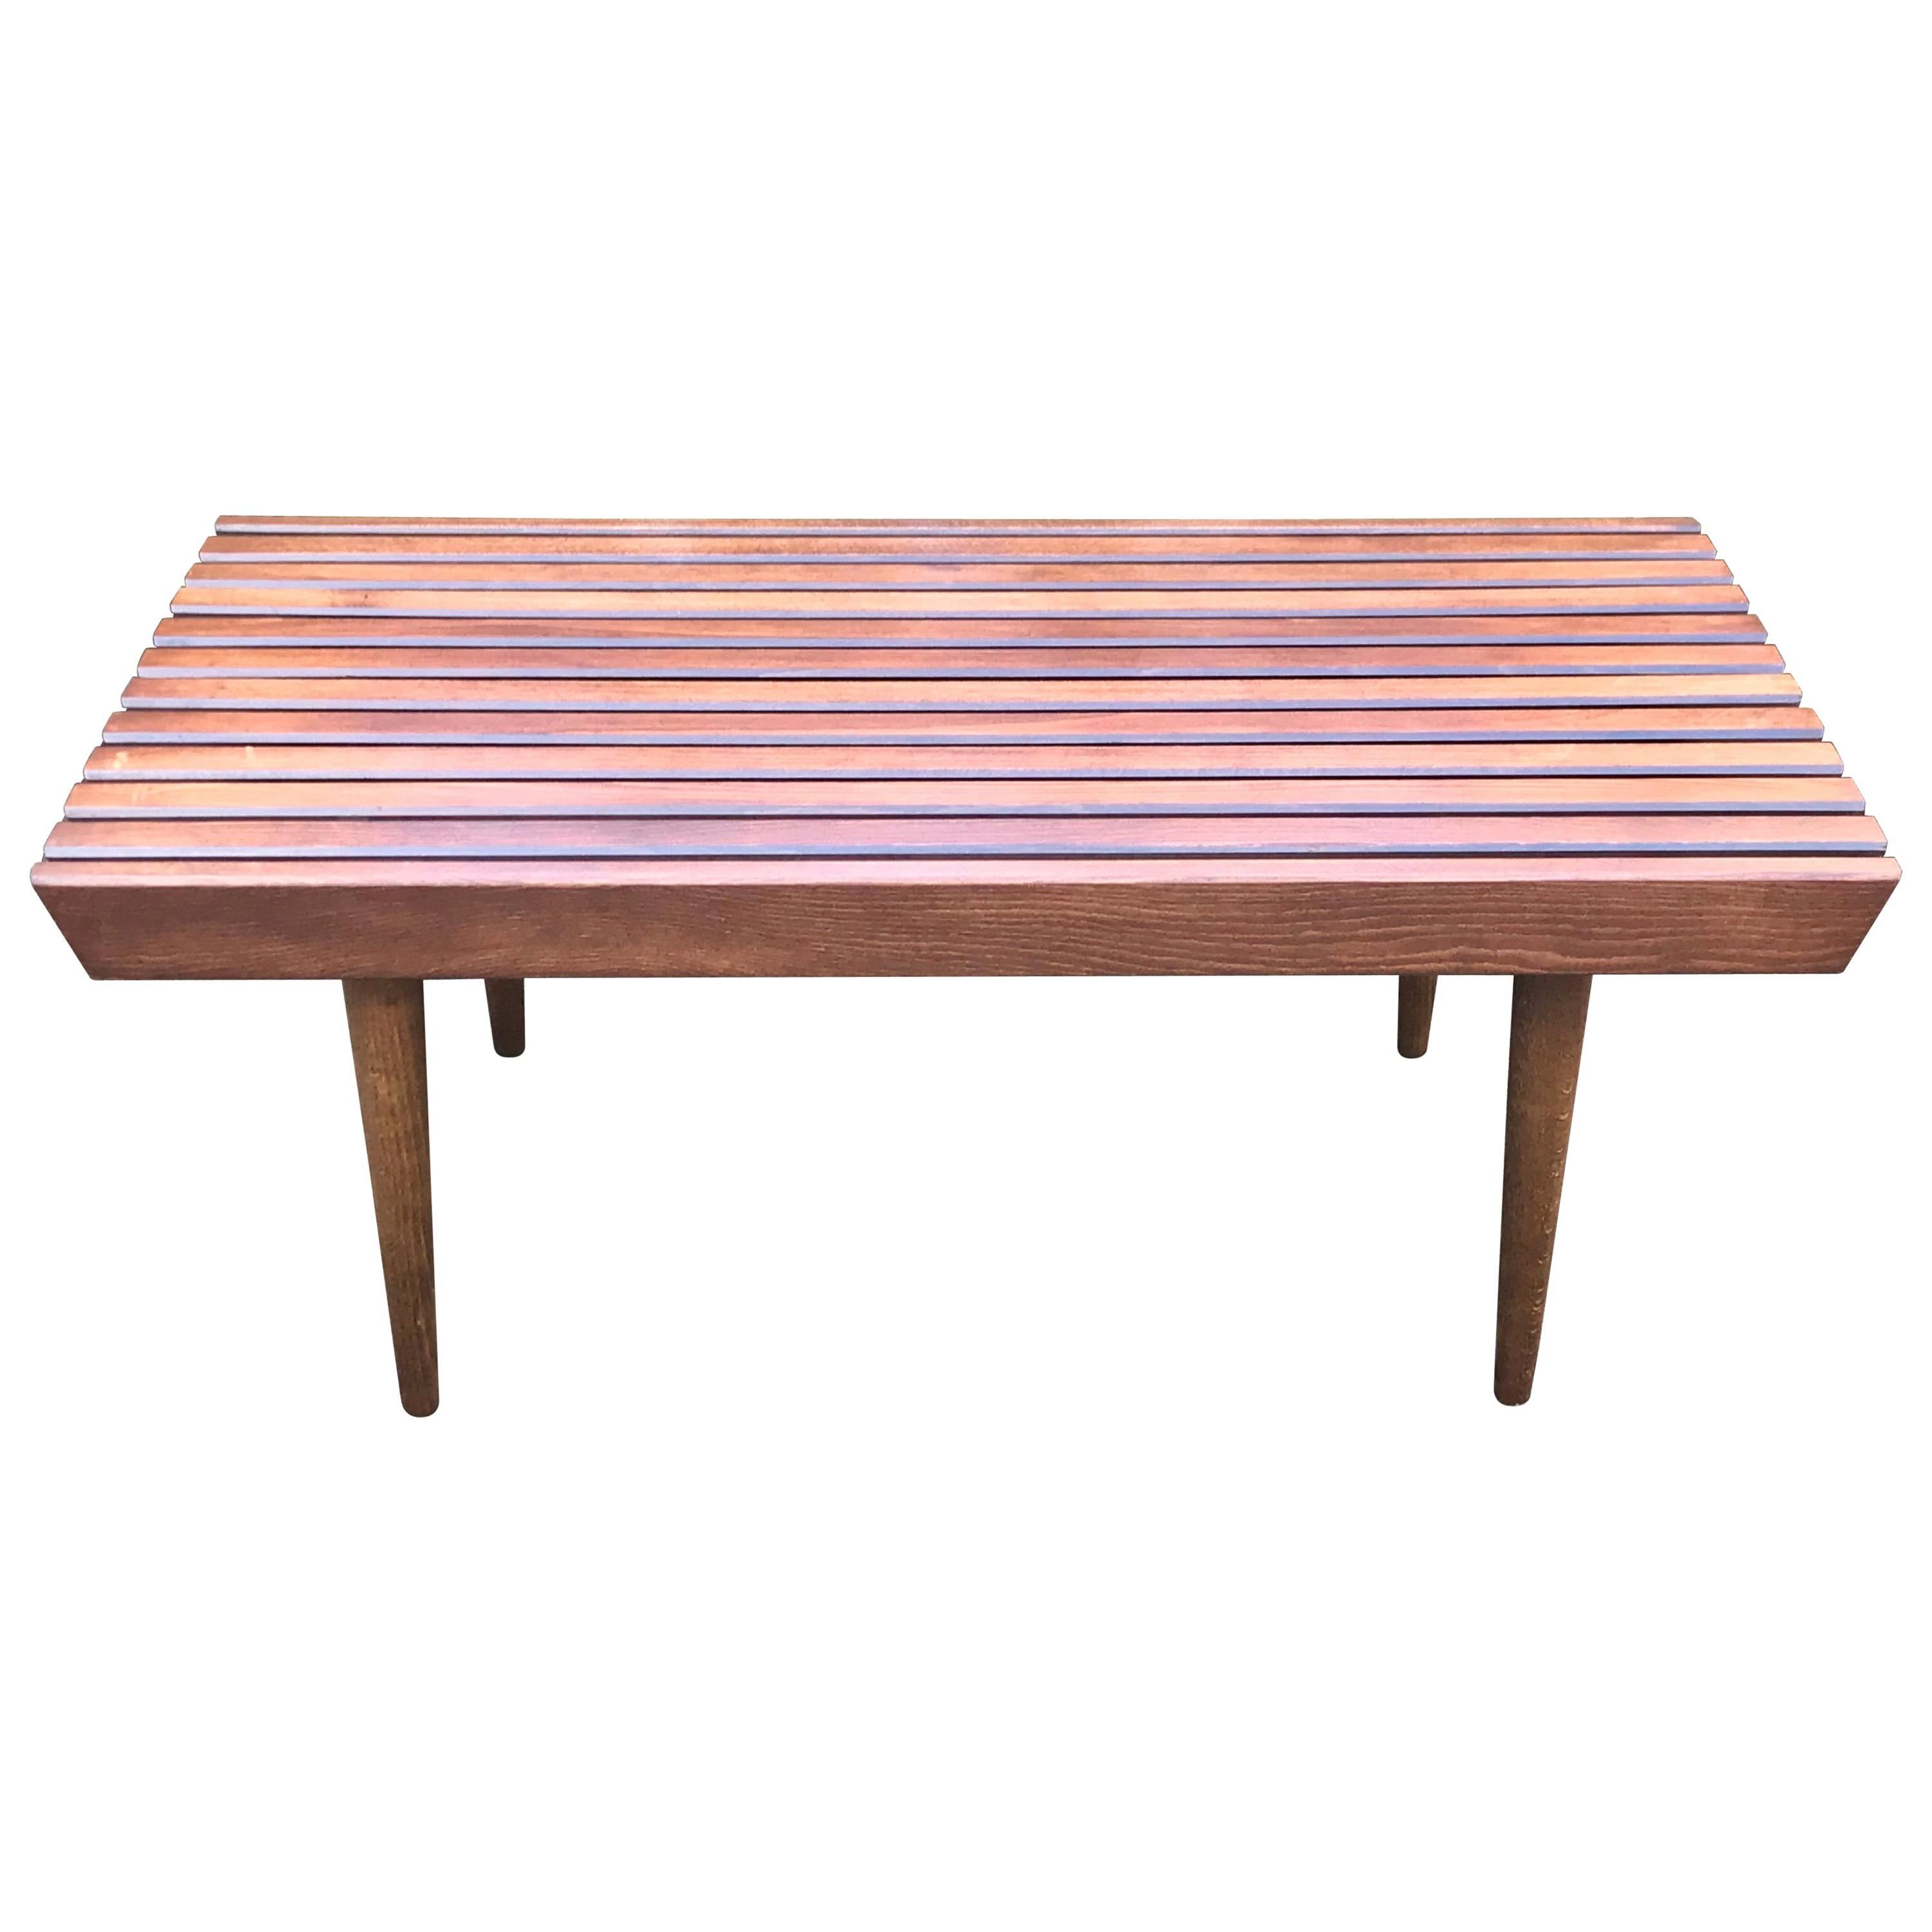 Mid Century Wood Slat Bench in the Style of George Nelson, 1960s